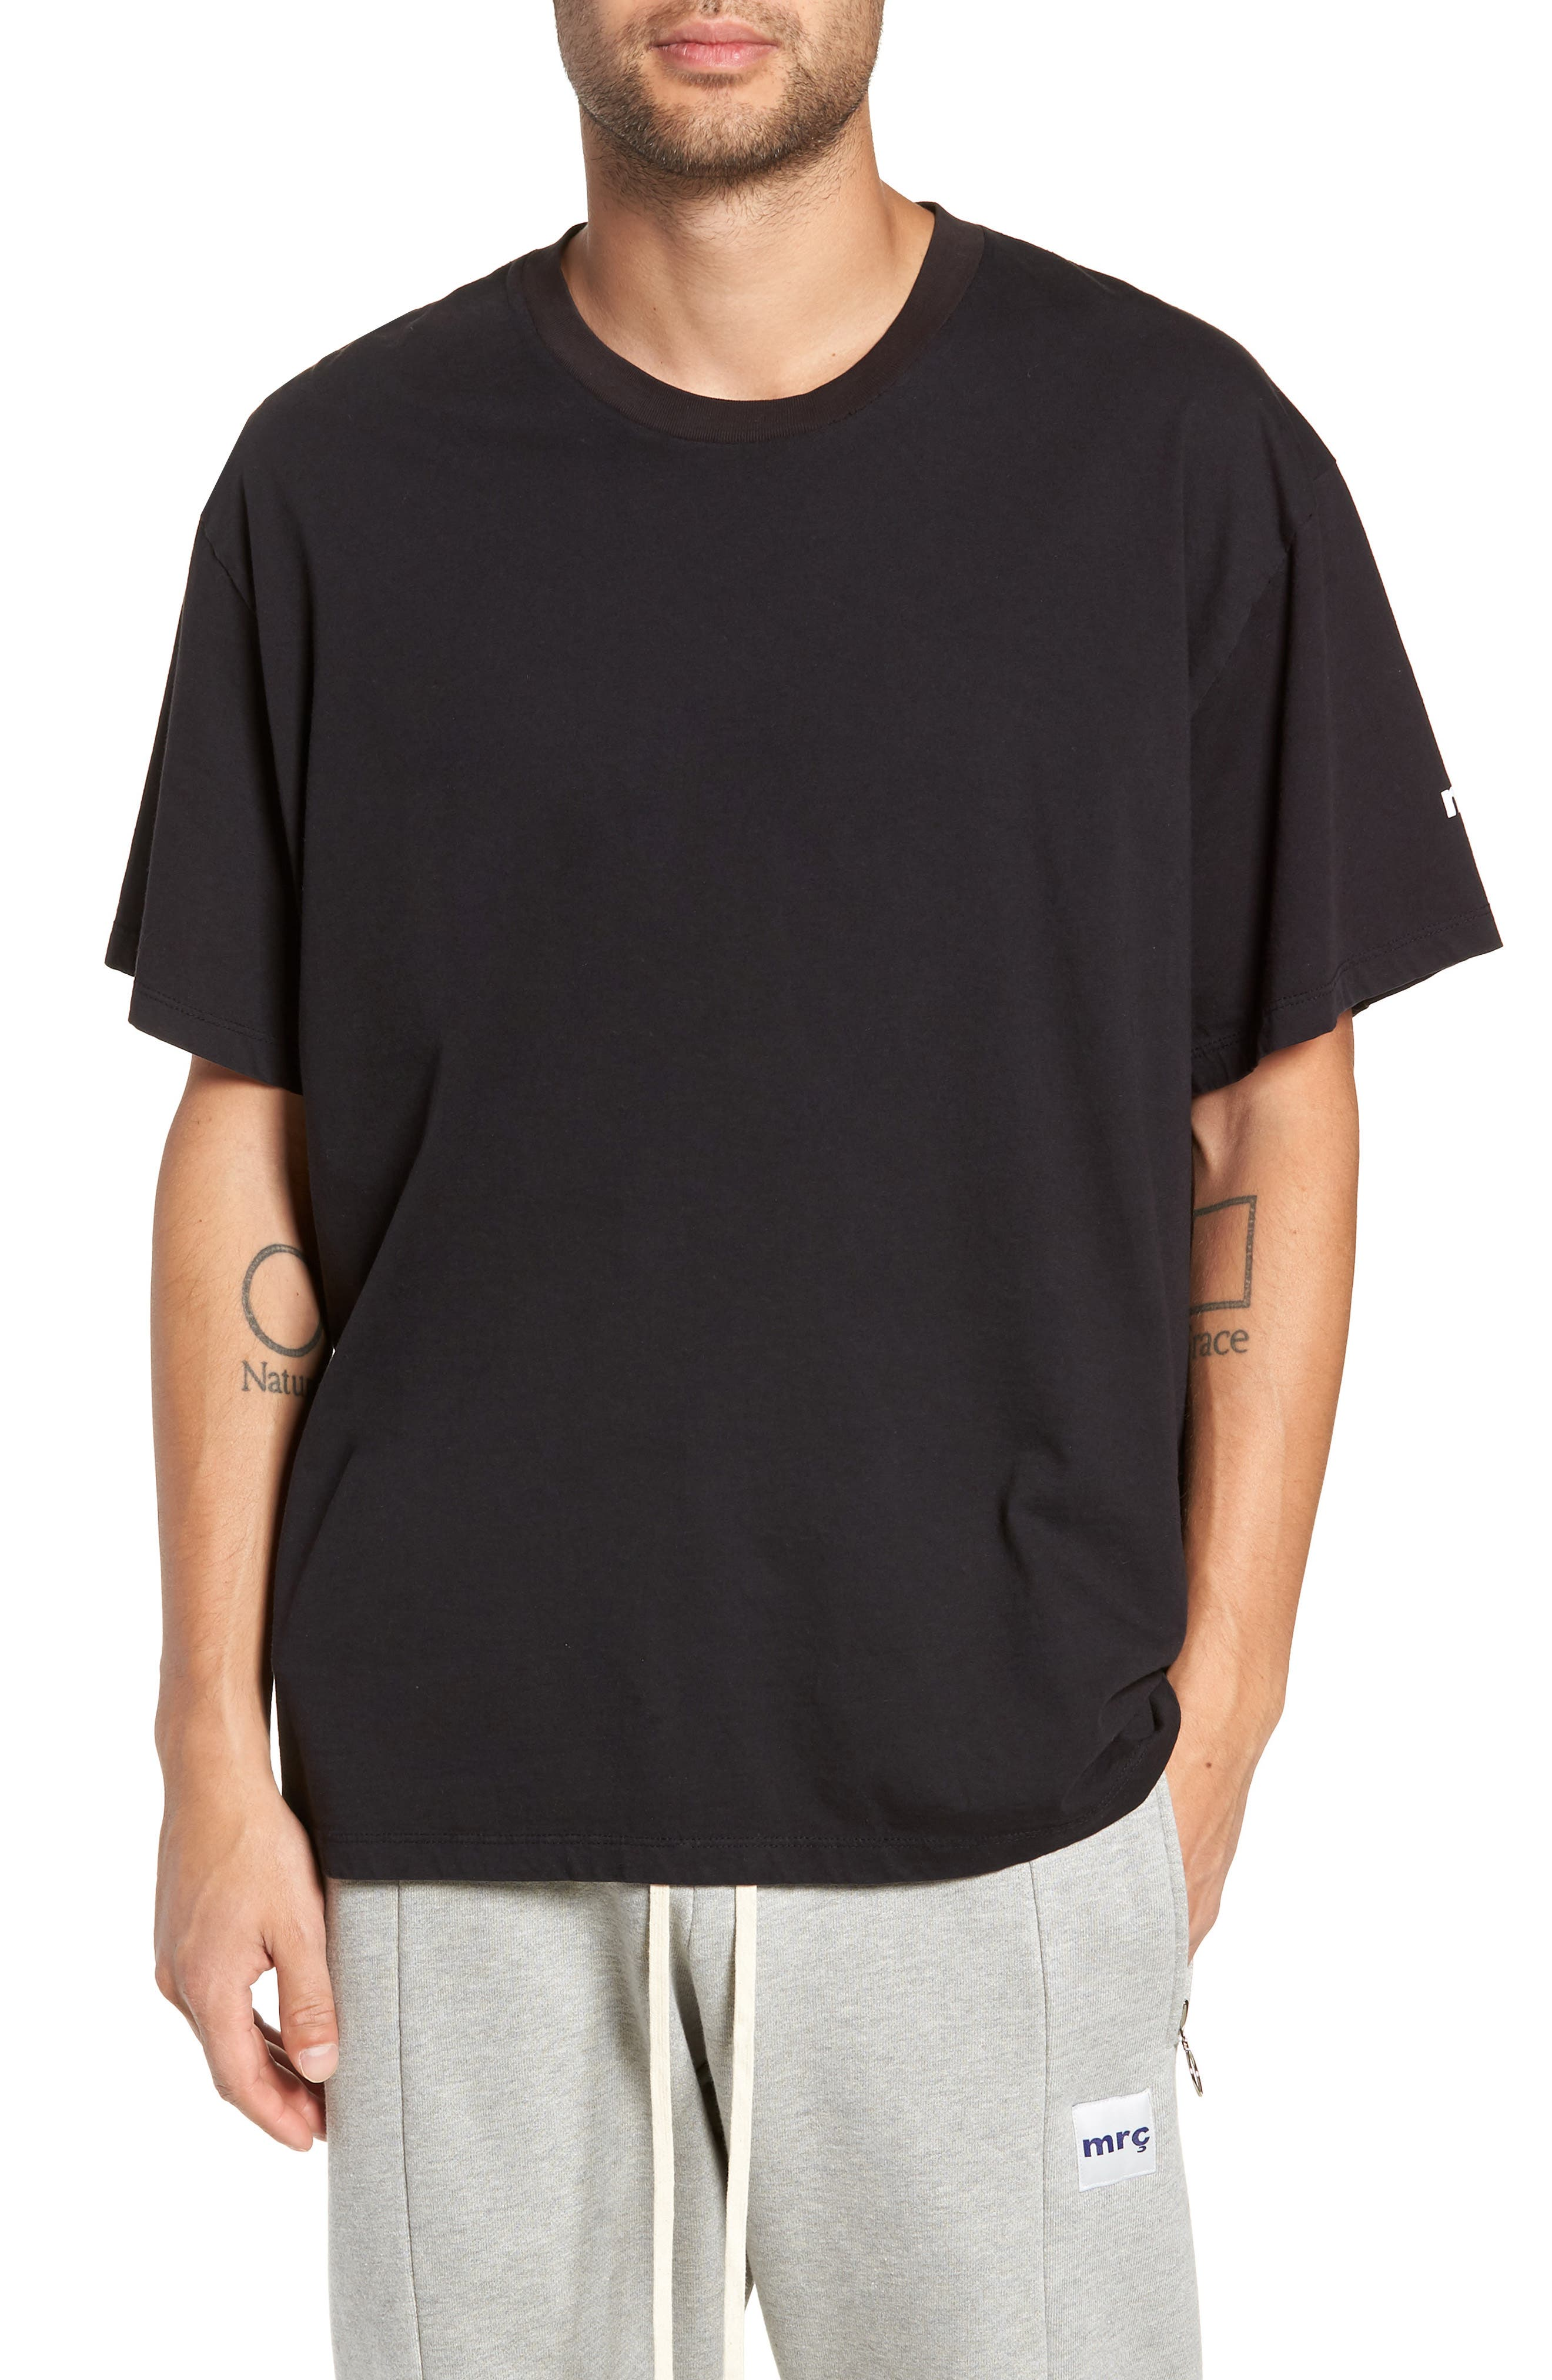 MR. COMPLETELY Same Old Madness Oversize T-Shirt in Black